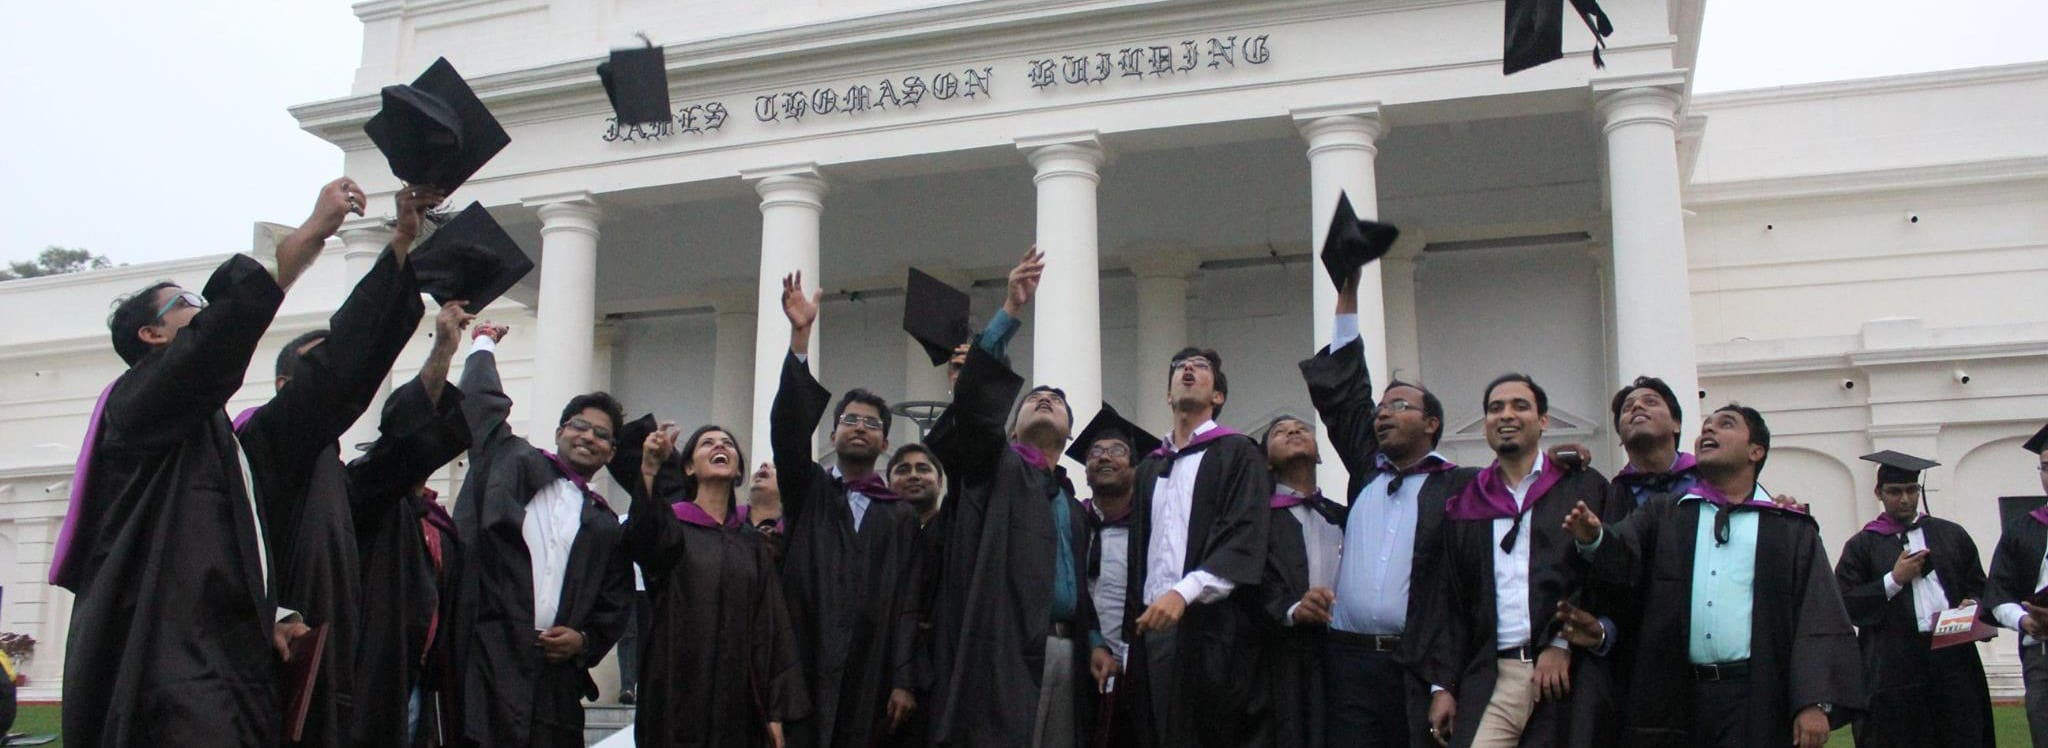 17th Convocation to be held at IIT Roorkee on 23 & 24 Sept; Degrees will be awarded to 2153 students this year